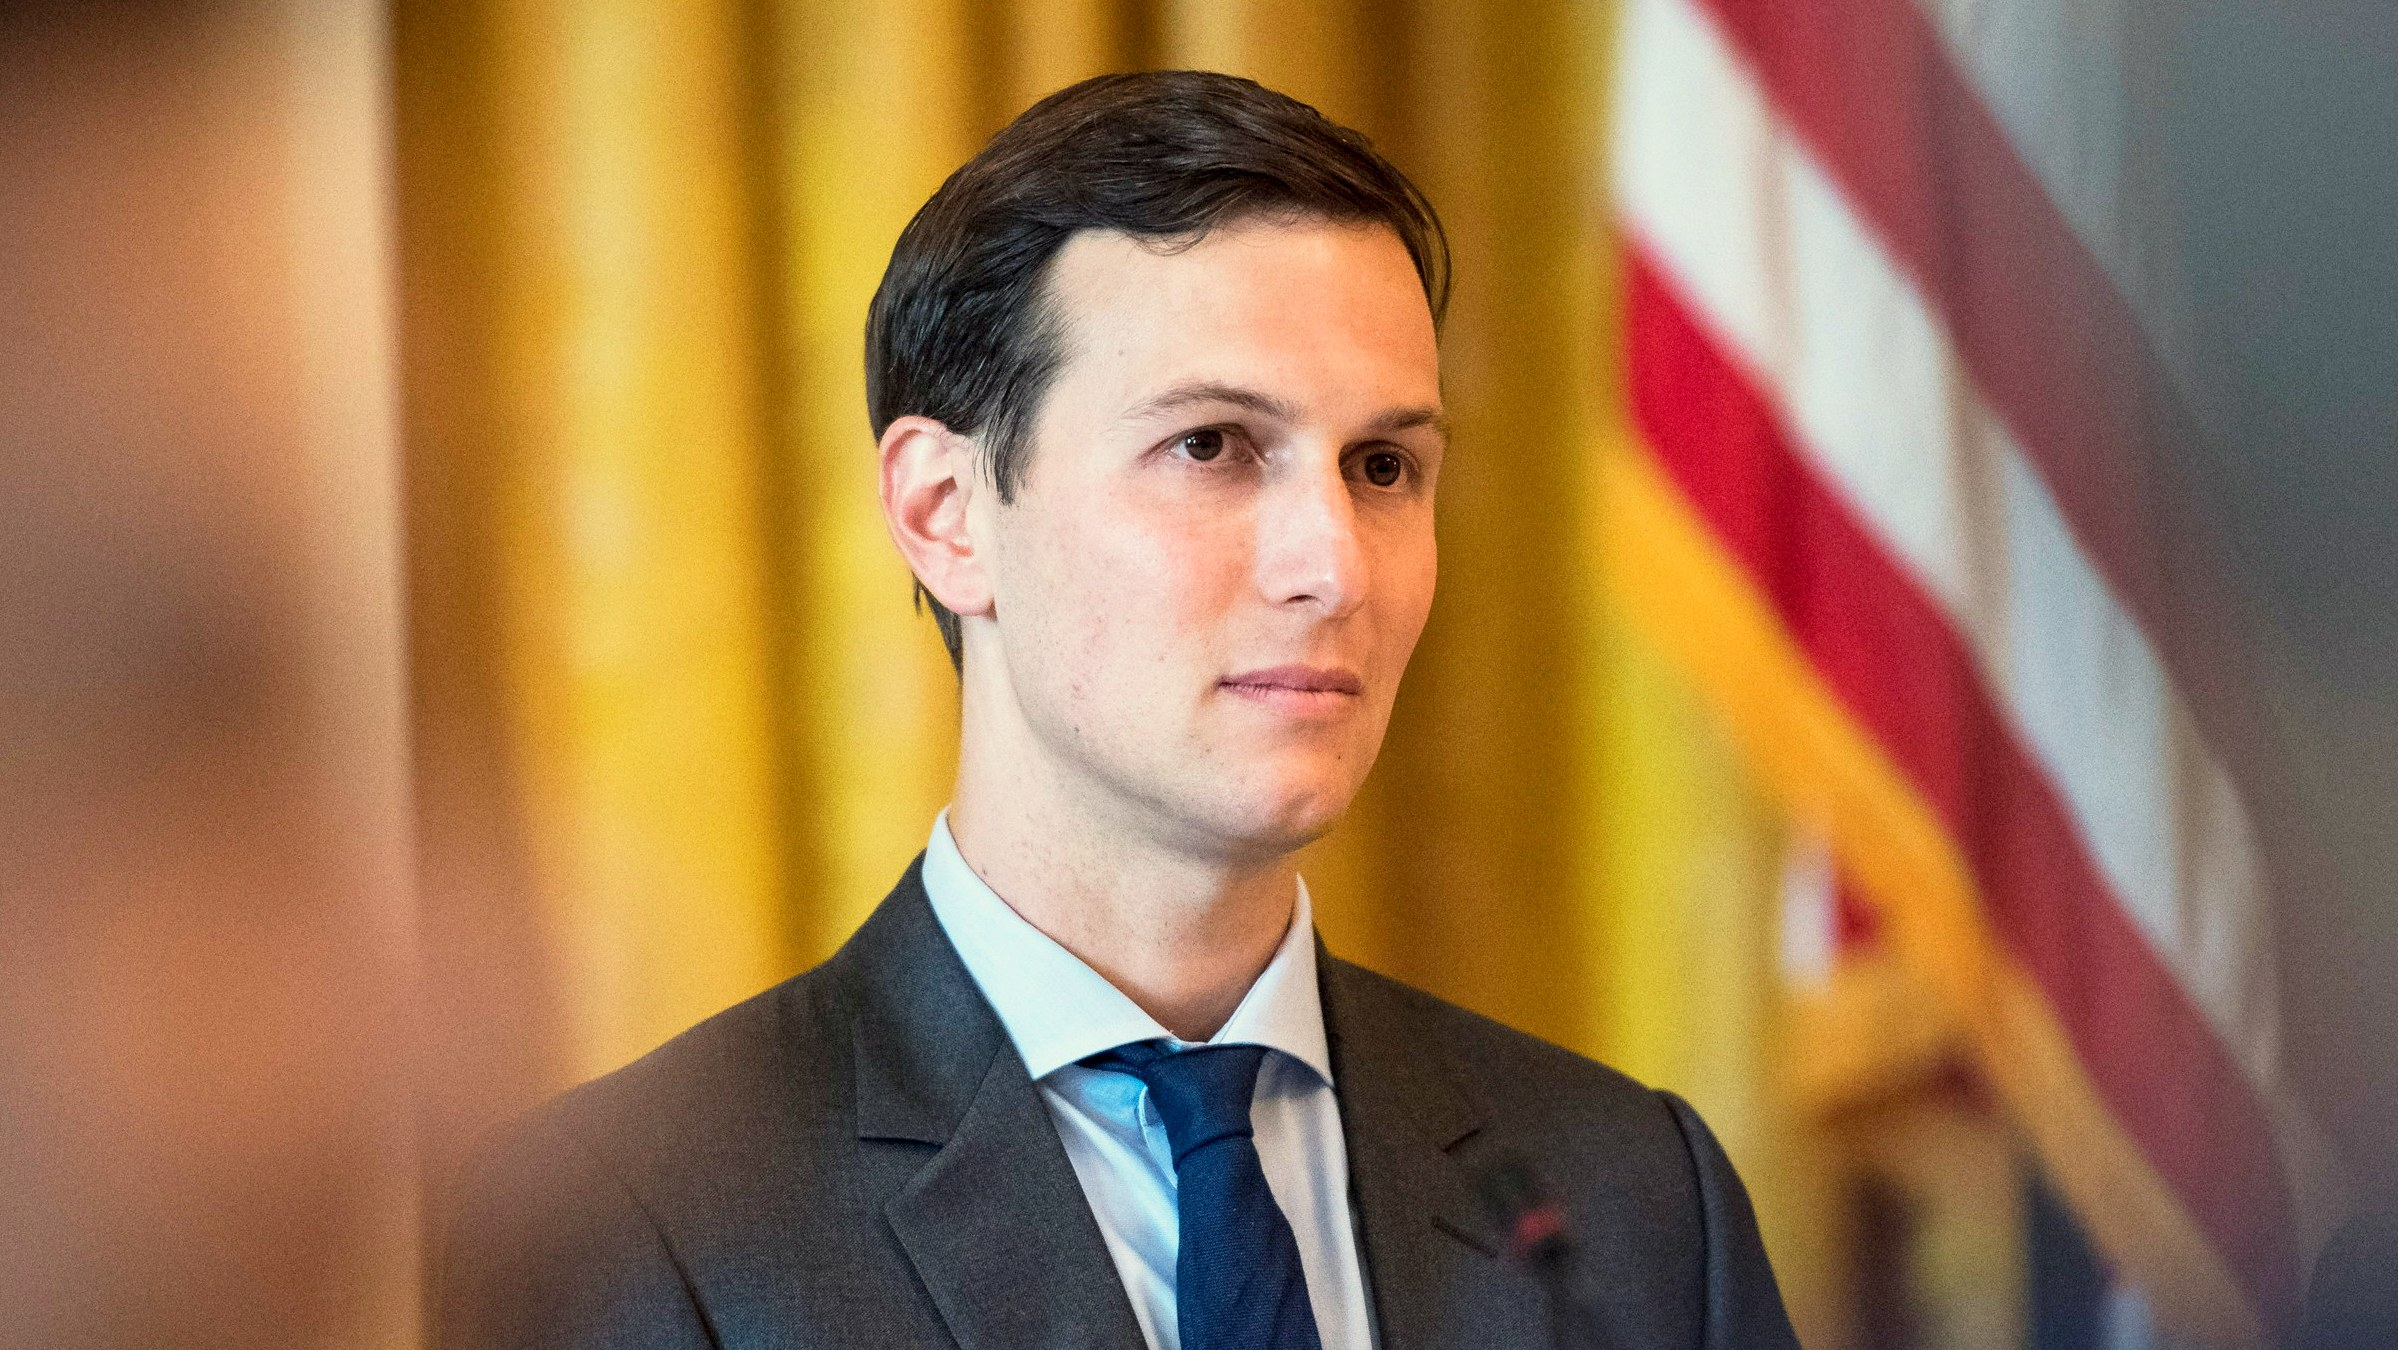 A lawsuit this week targets an apartment company owned by President Trump's son-in-law Jared Kushner. (wired.com)